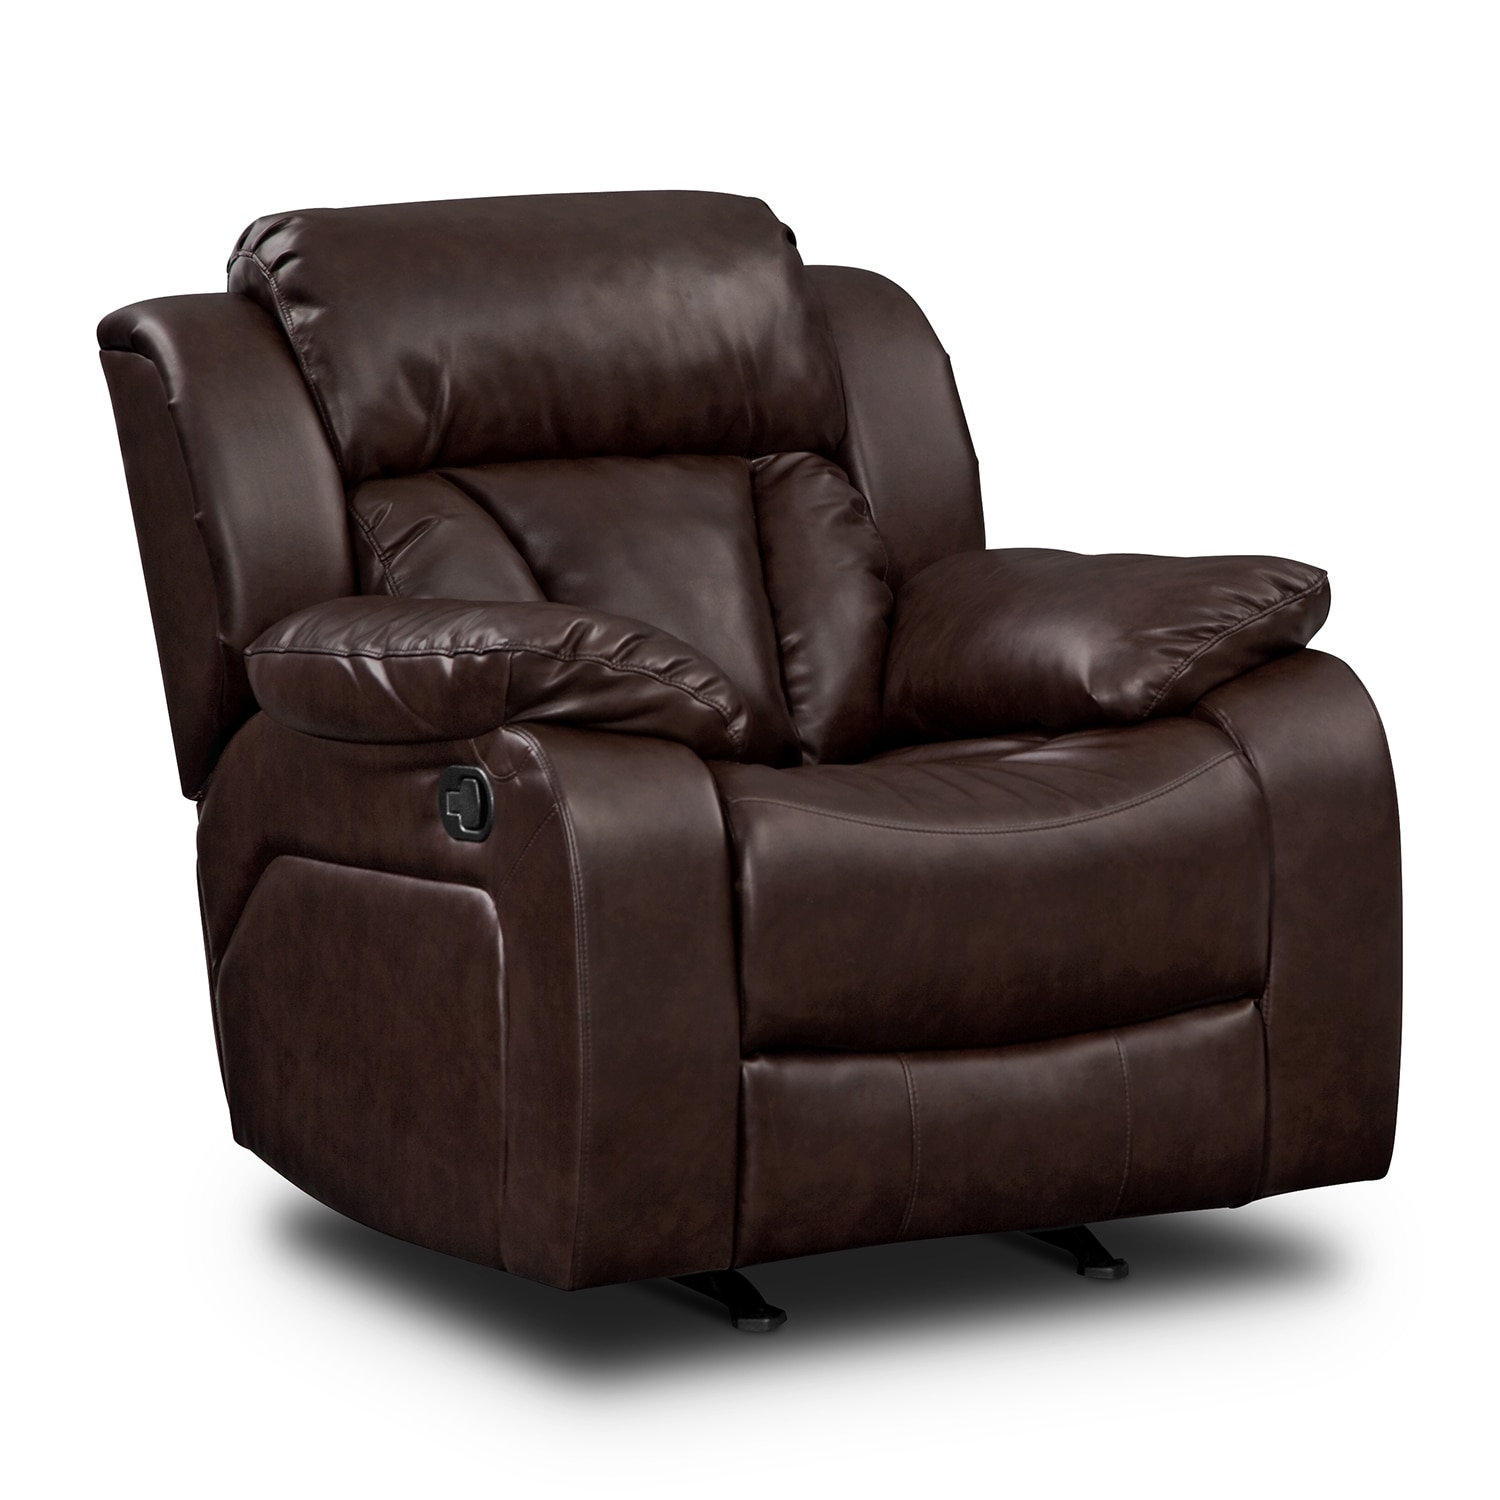 leather recliner chairs on sale crown royal chair rocker